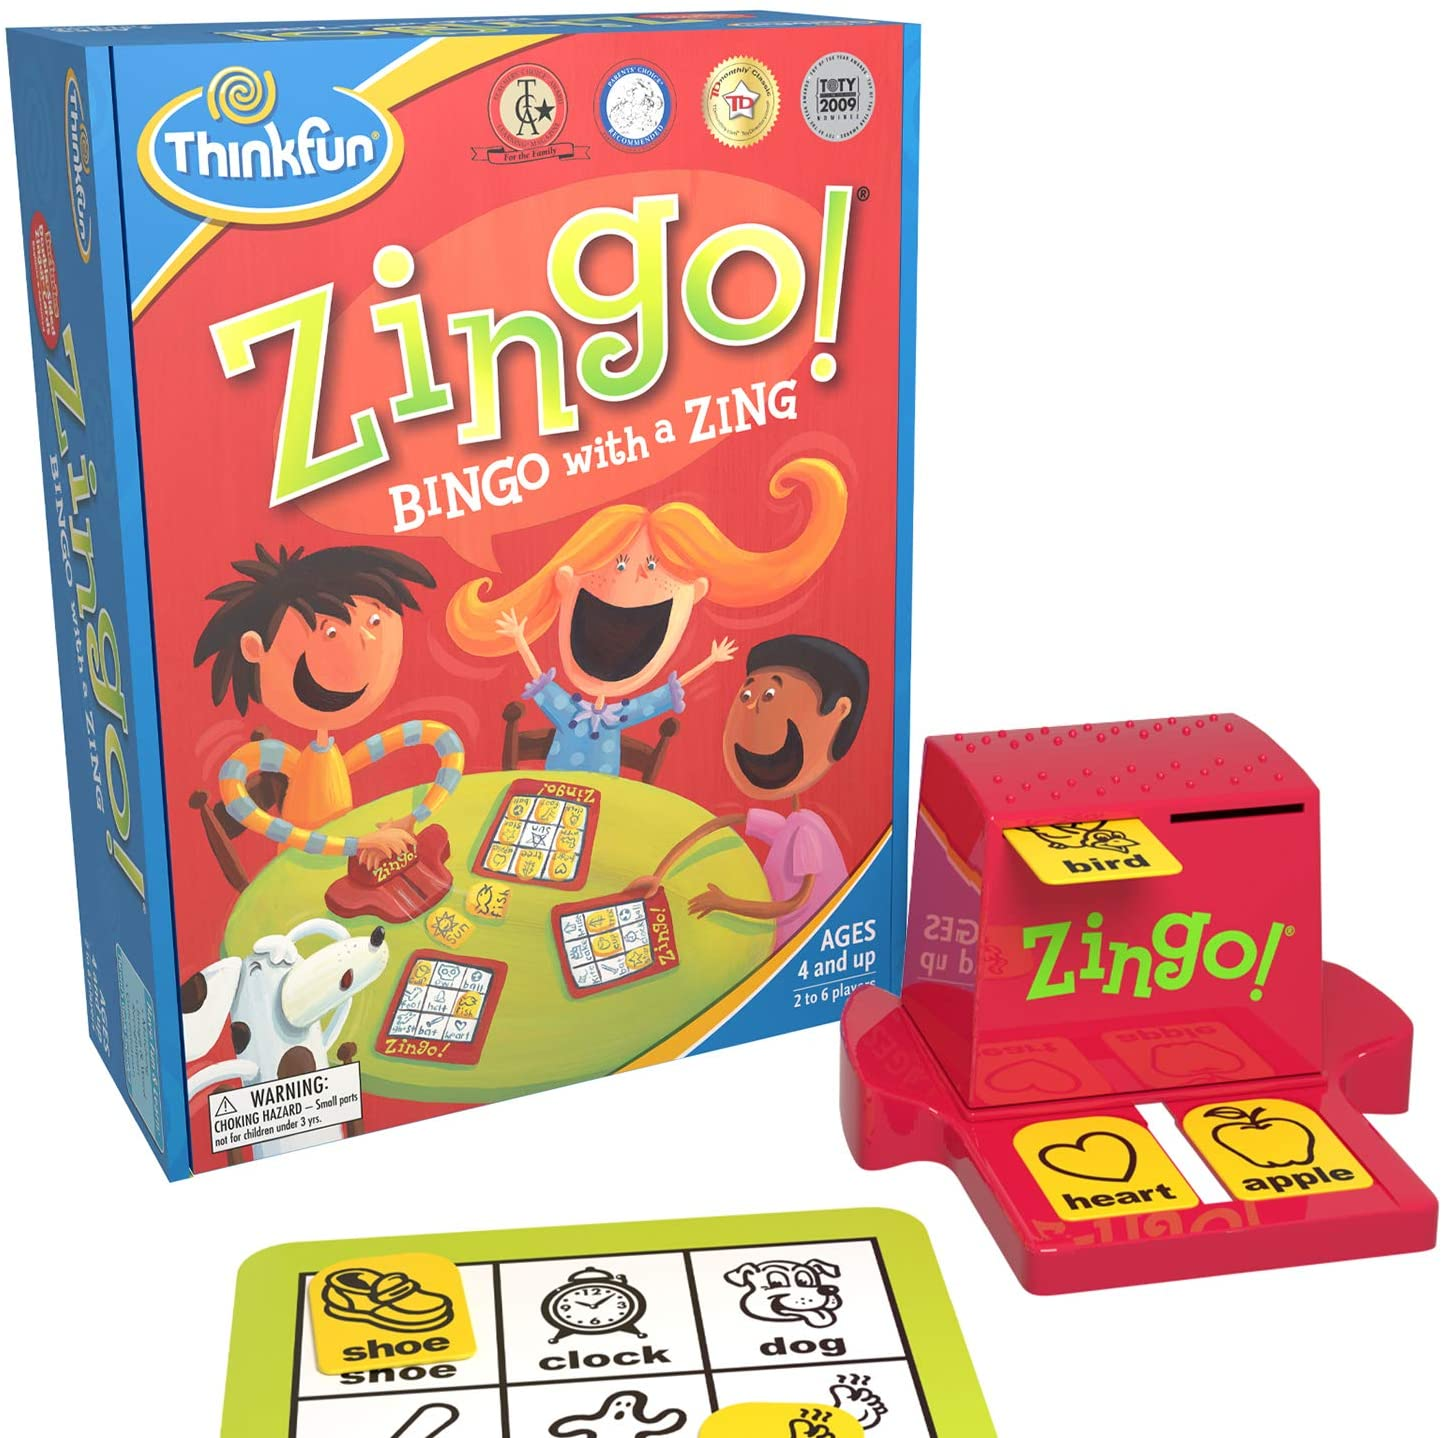 Think fun Zingo Bingo dyslexia board game